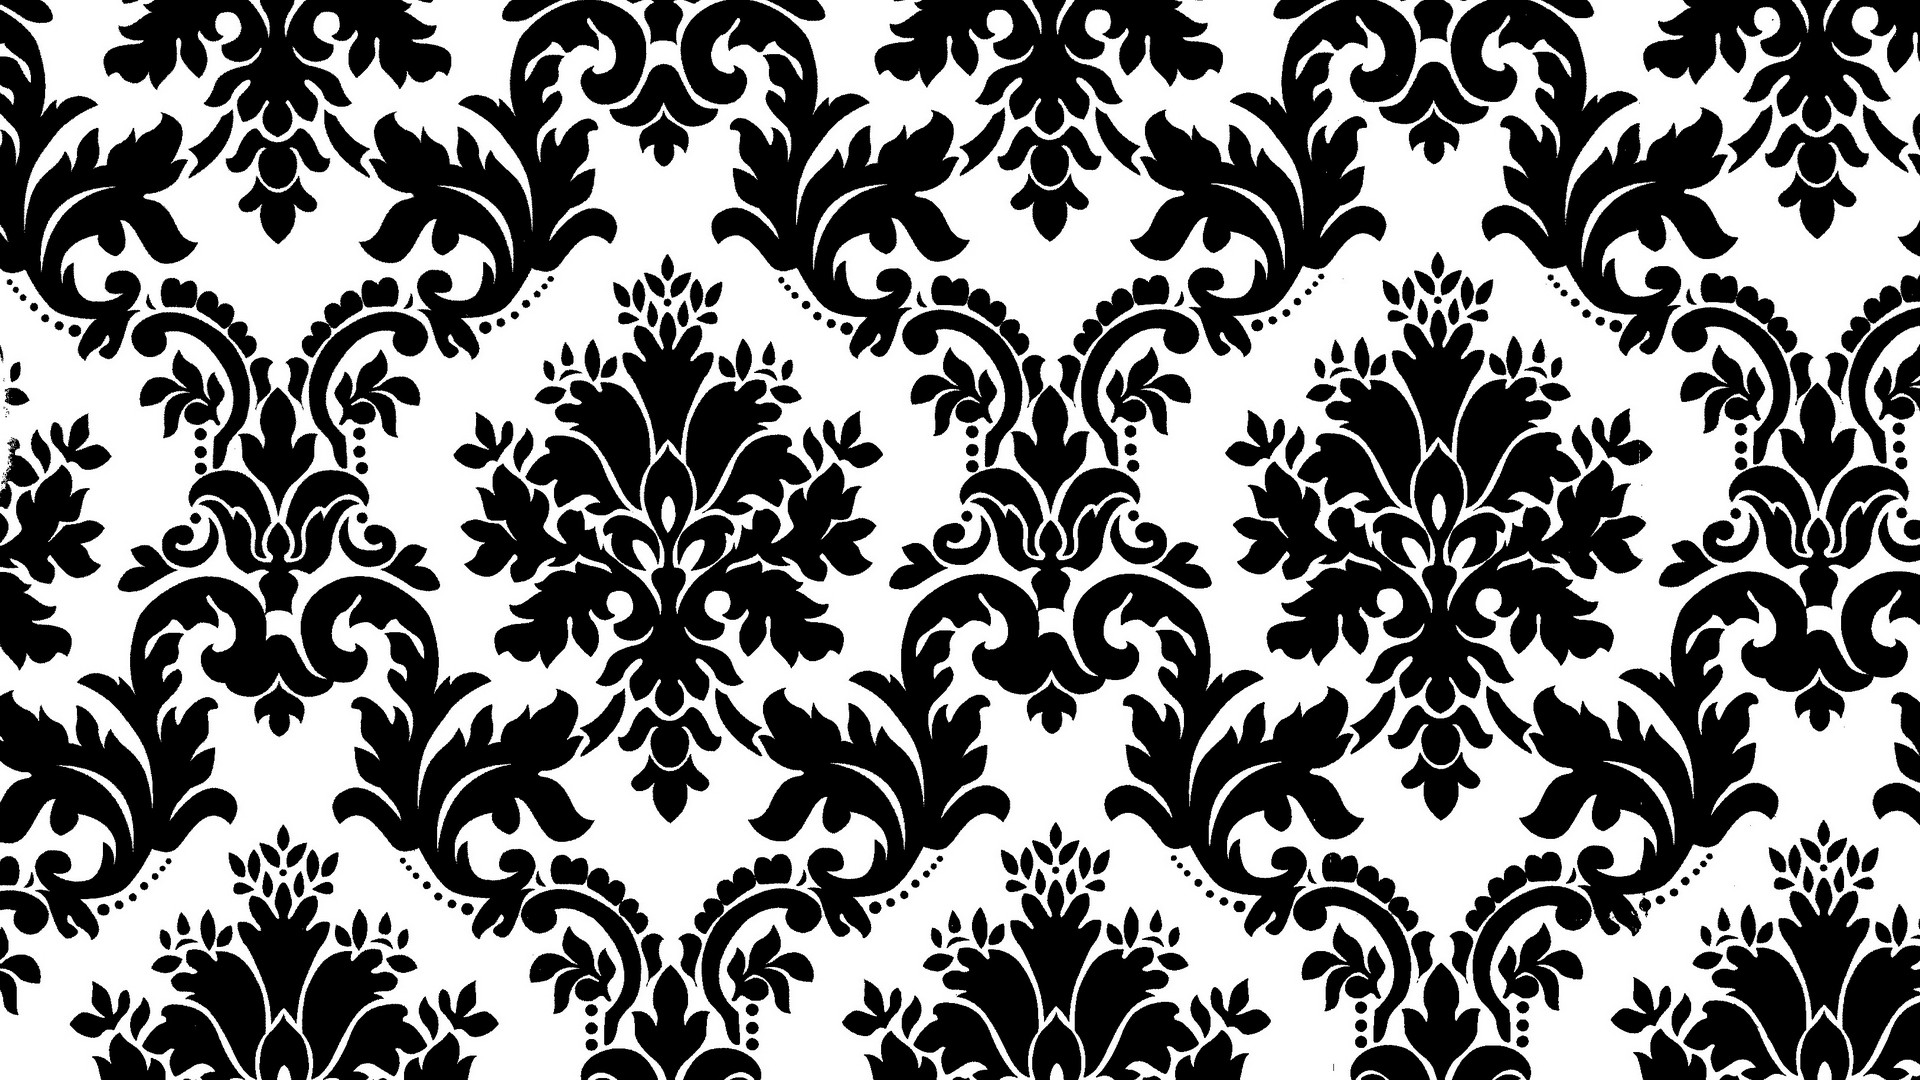 Minimalistic Patterns Wallpaper 1920x1080 Minimalistic Patterns 1920x1080